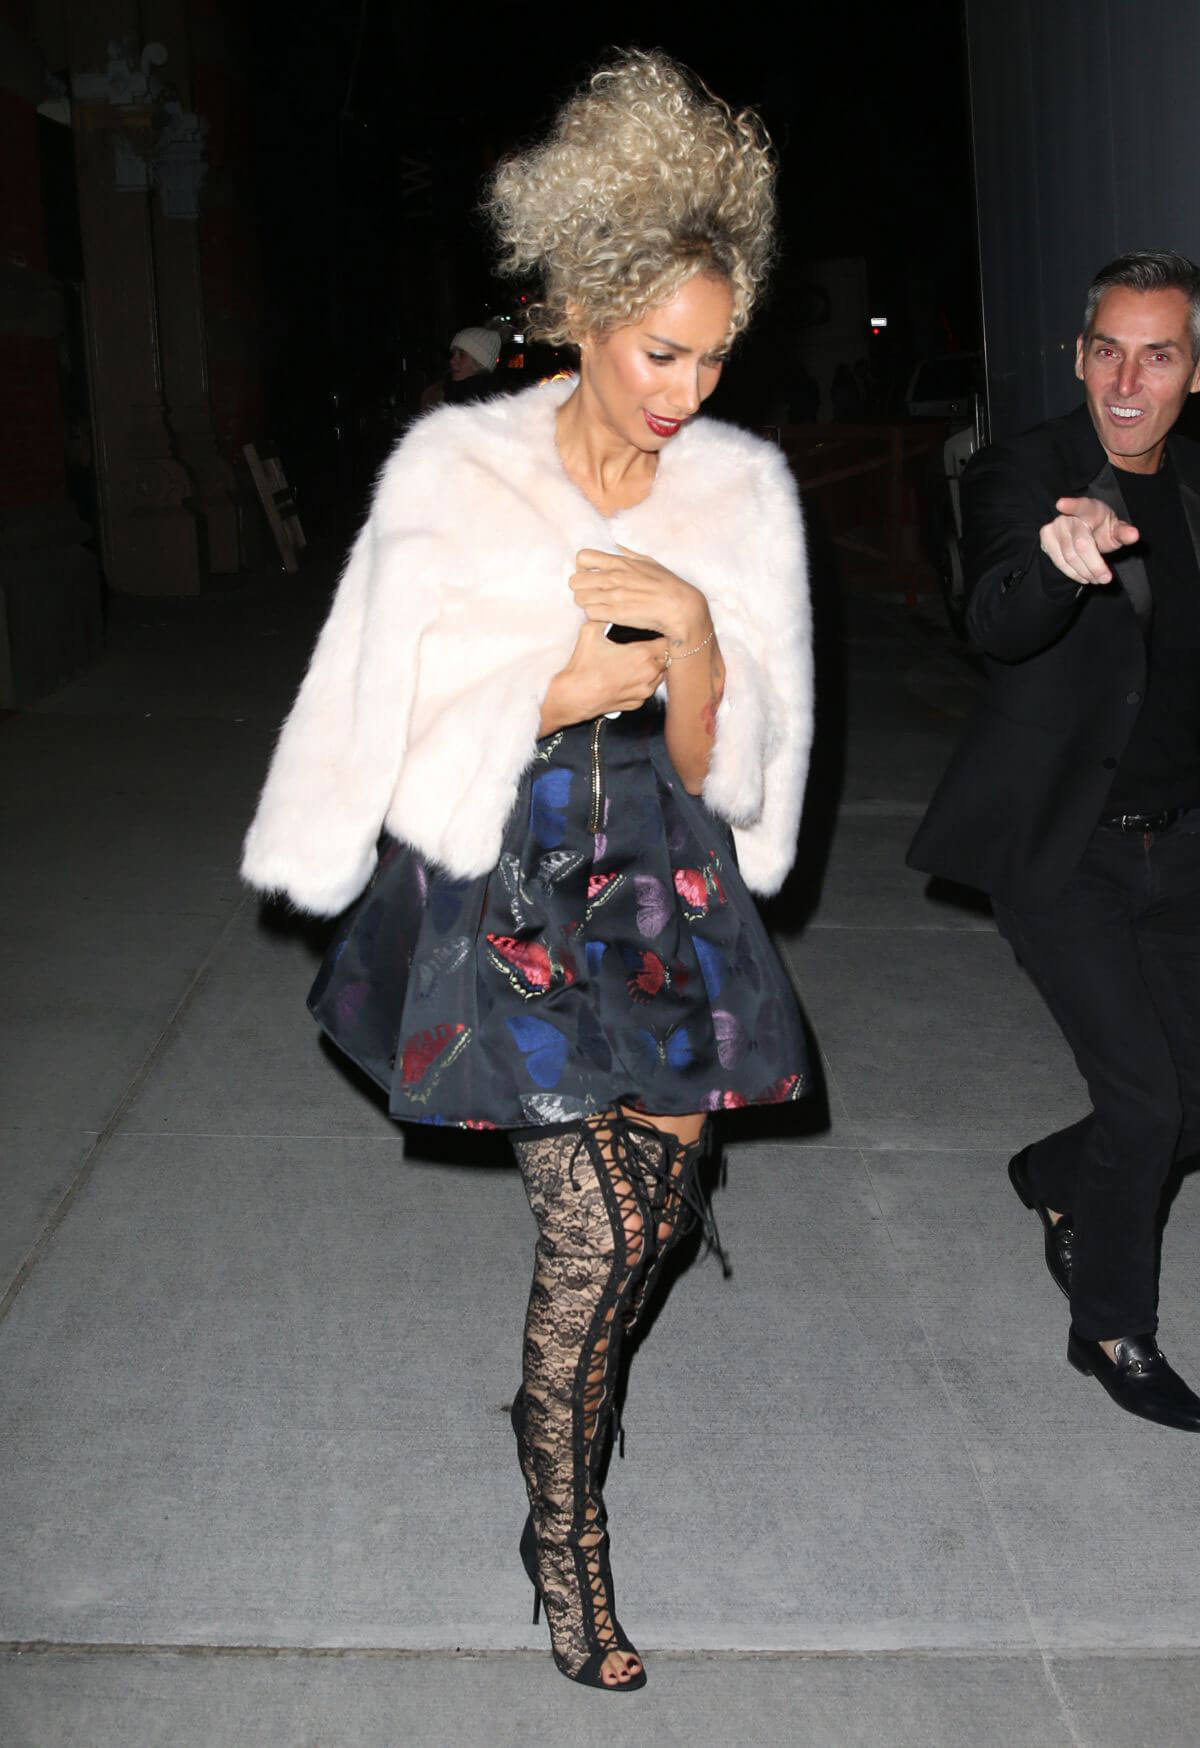 Leona Lewis Night Out in New York